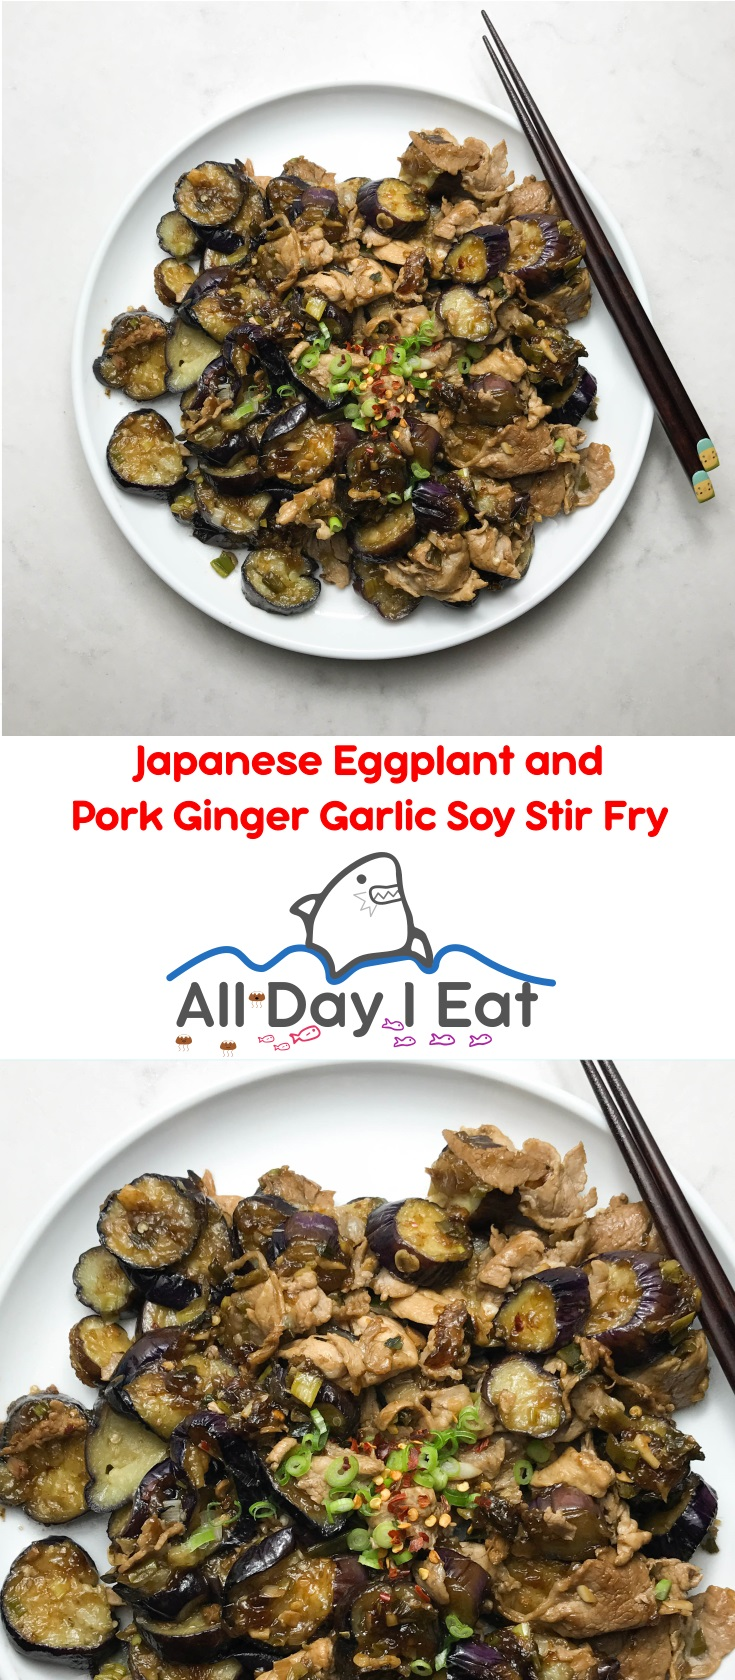 Japanese Eggplant and Pork Ginger Garlic Soy Stir Fry | www.alldayieat.com